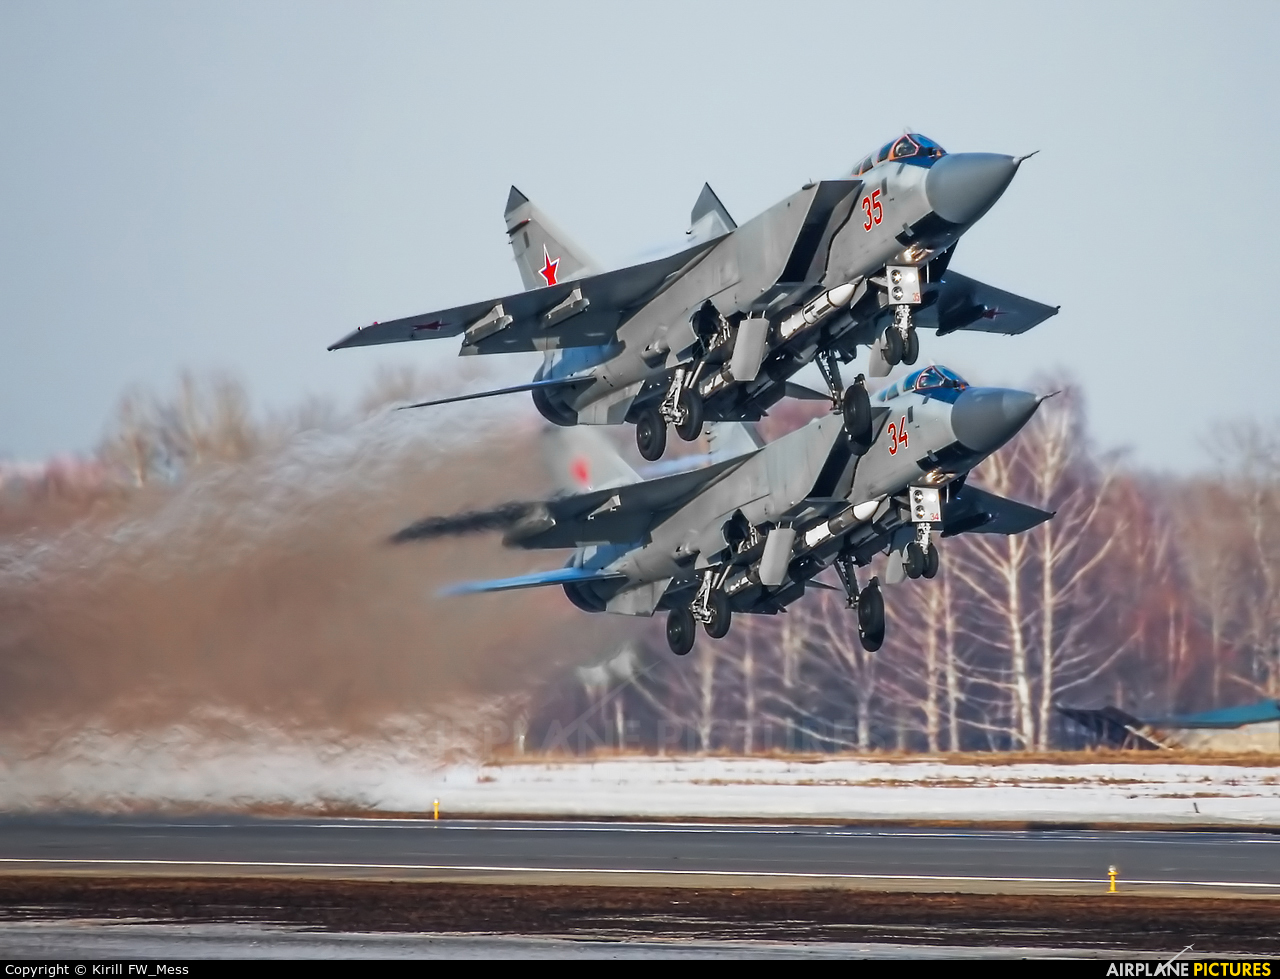 Russia - Air Force 35 aircraft at Undisclosed Location